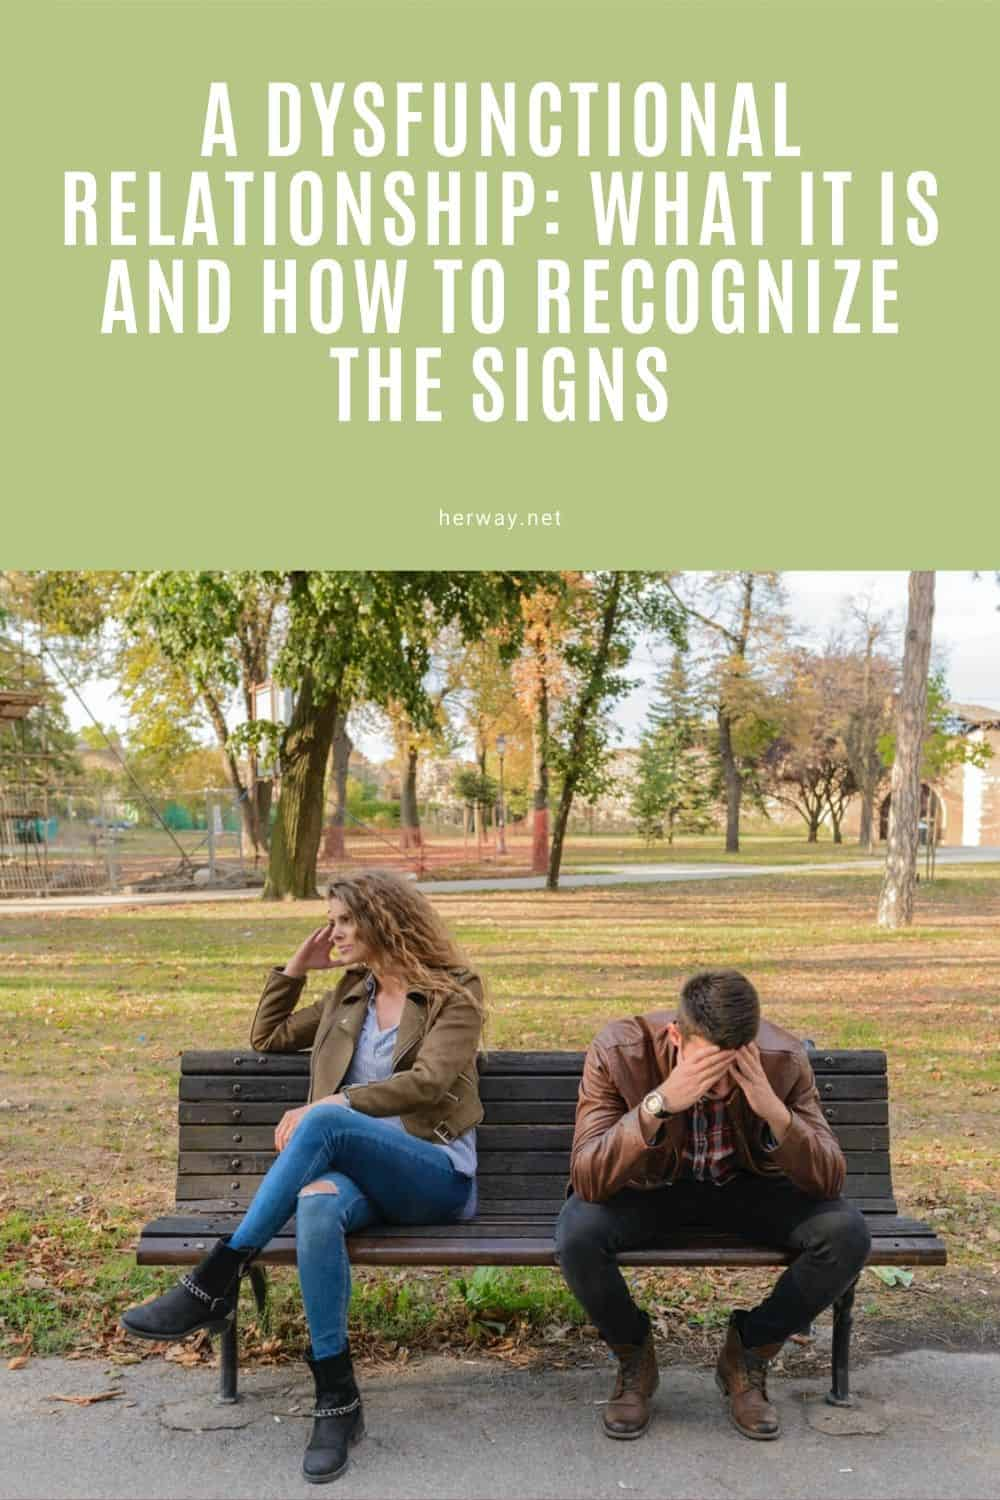 A Dysfunctional Relationship: What It Is And How To Recognize The Signs